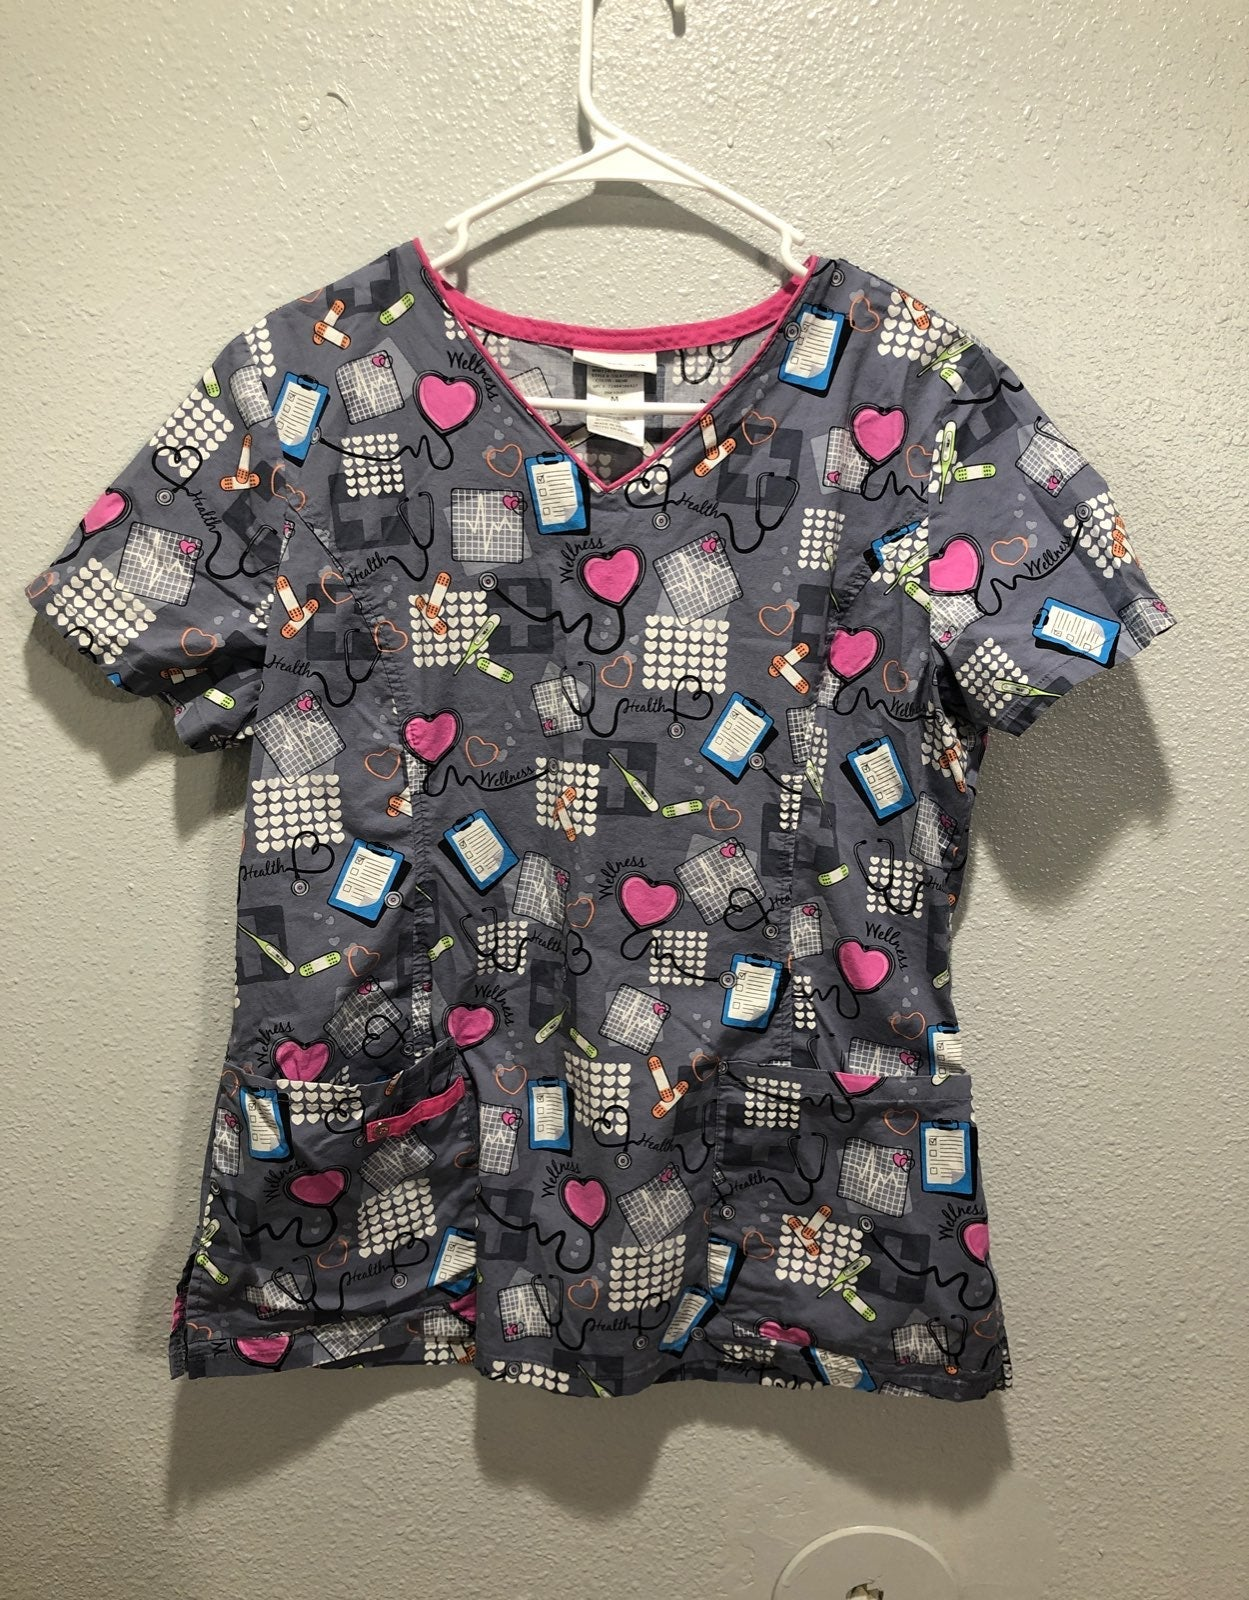 Womens scrb top size medium gray and pur